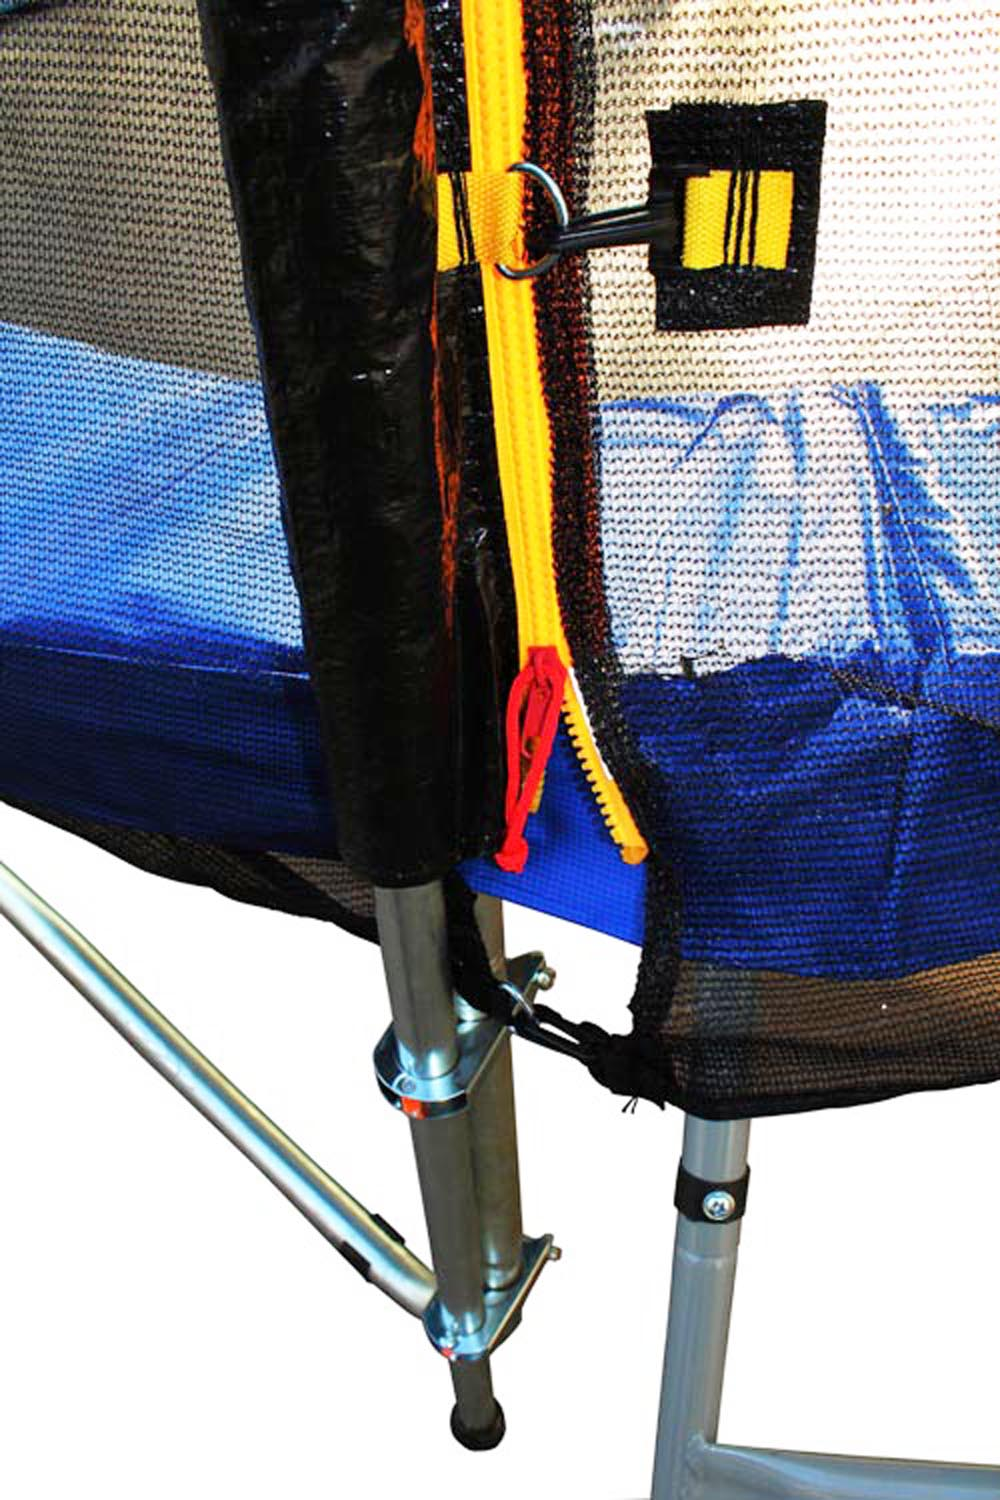 ExacMe 10 FT 4W Legs Trampoline w/ safety pad & Enclosure Net ALL-IN-ONE COMBO T10 5